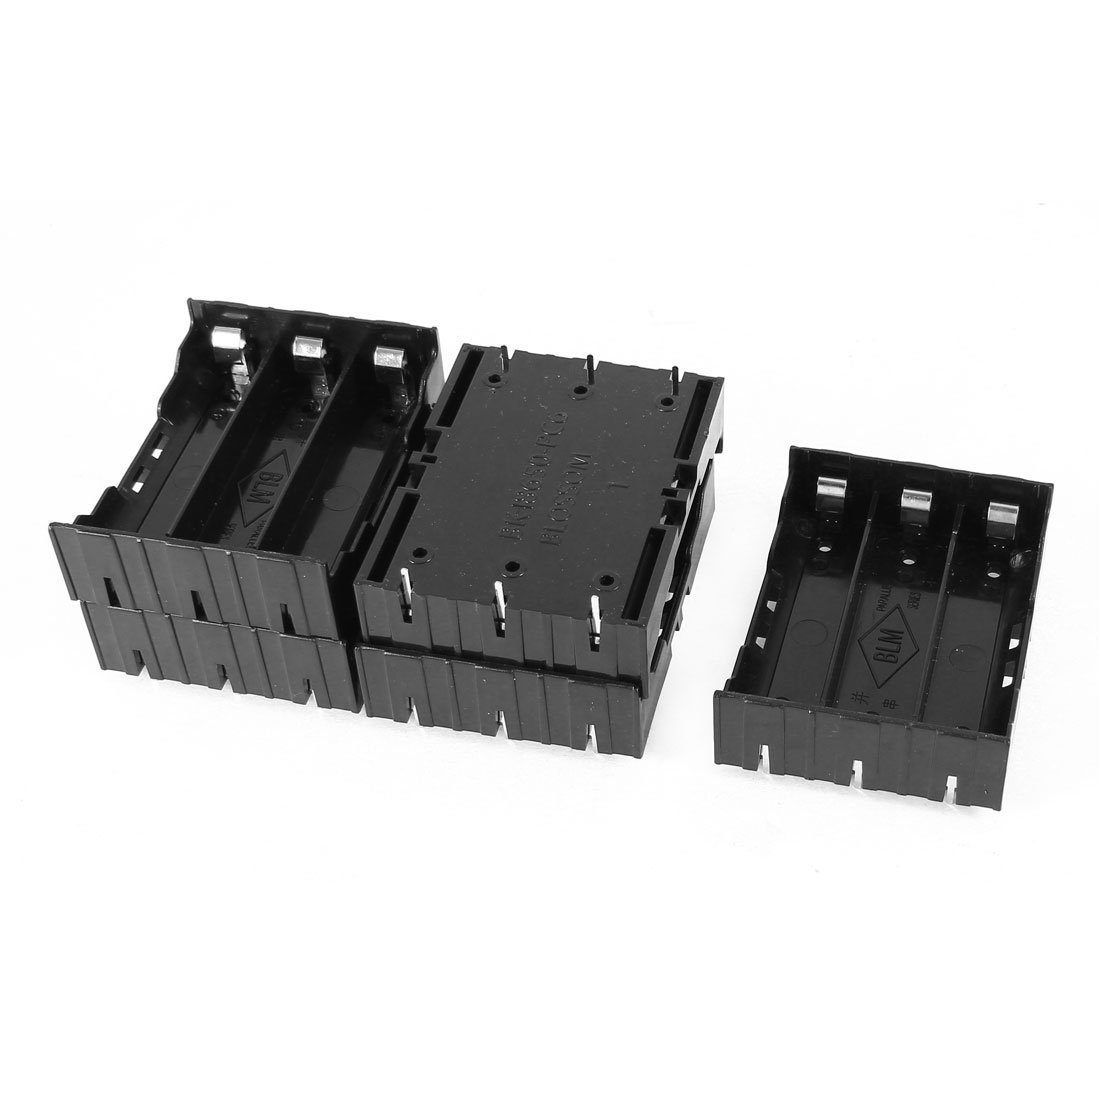 5 Pcs Black Plastic 3 x 3.7V 18650 Batteries 6 Pin Battery Holder Case kf 680 3 in 1 3 5 6 chic nanometer ceramic knives peeler set w holder white black